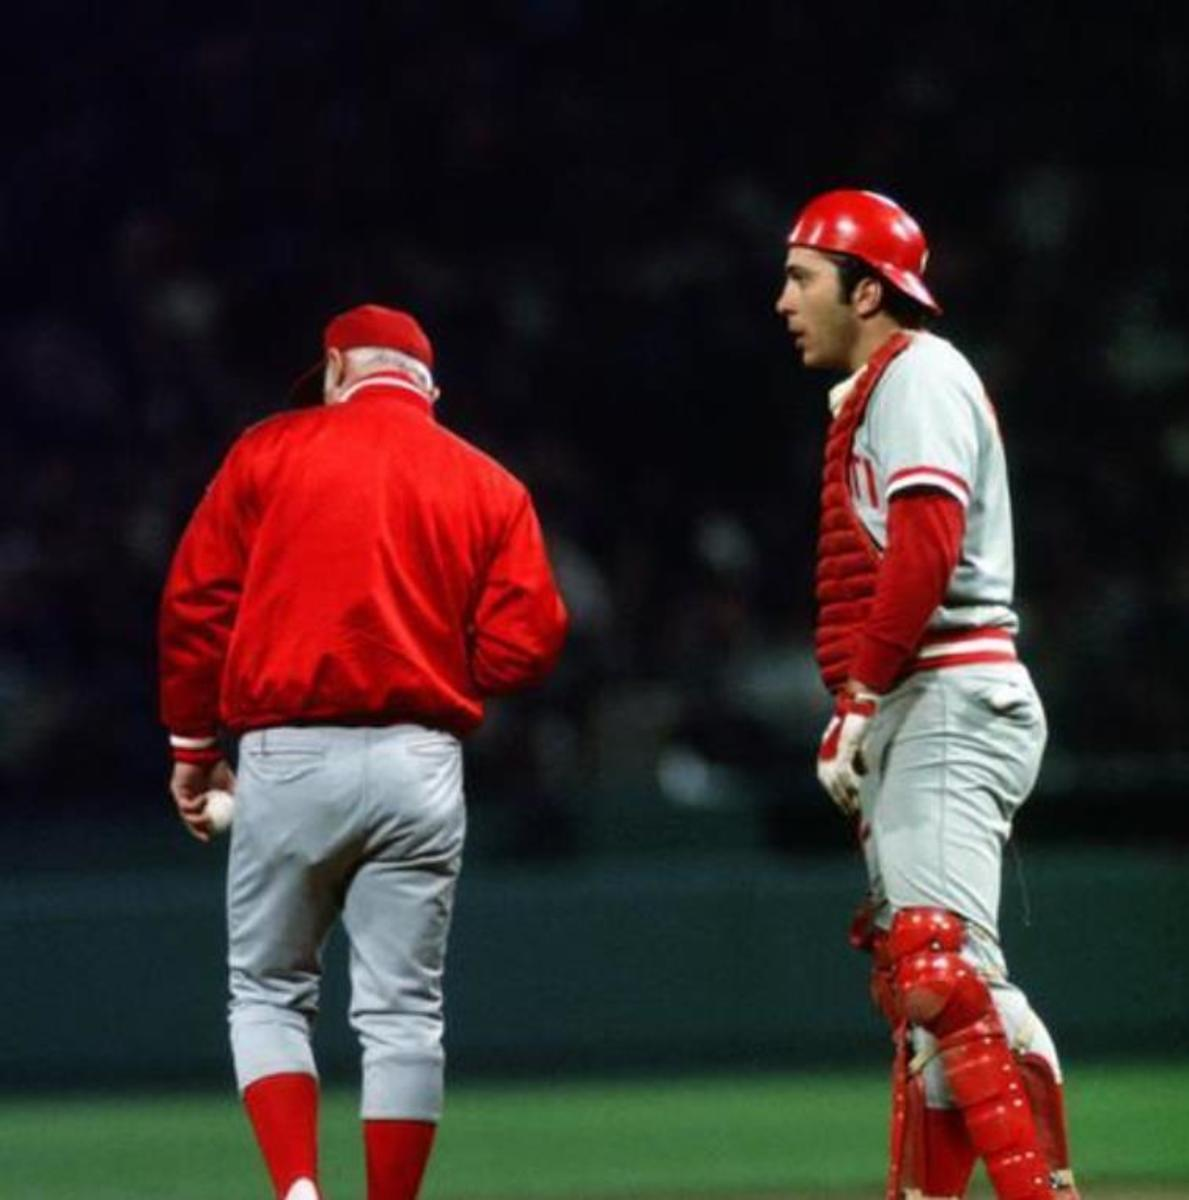 Captain Hook: Sparky would change pitchers 7 times in the game, 3 times before the end of the 5th.